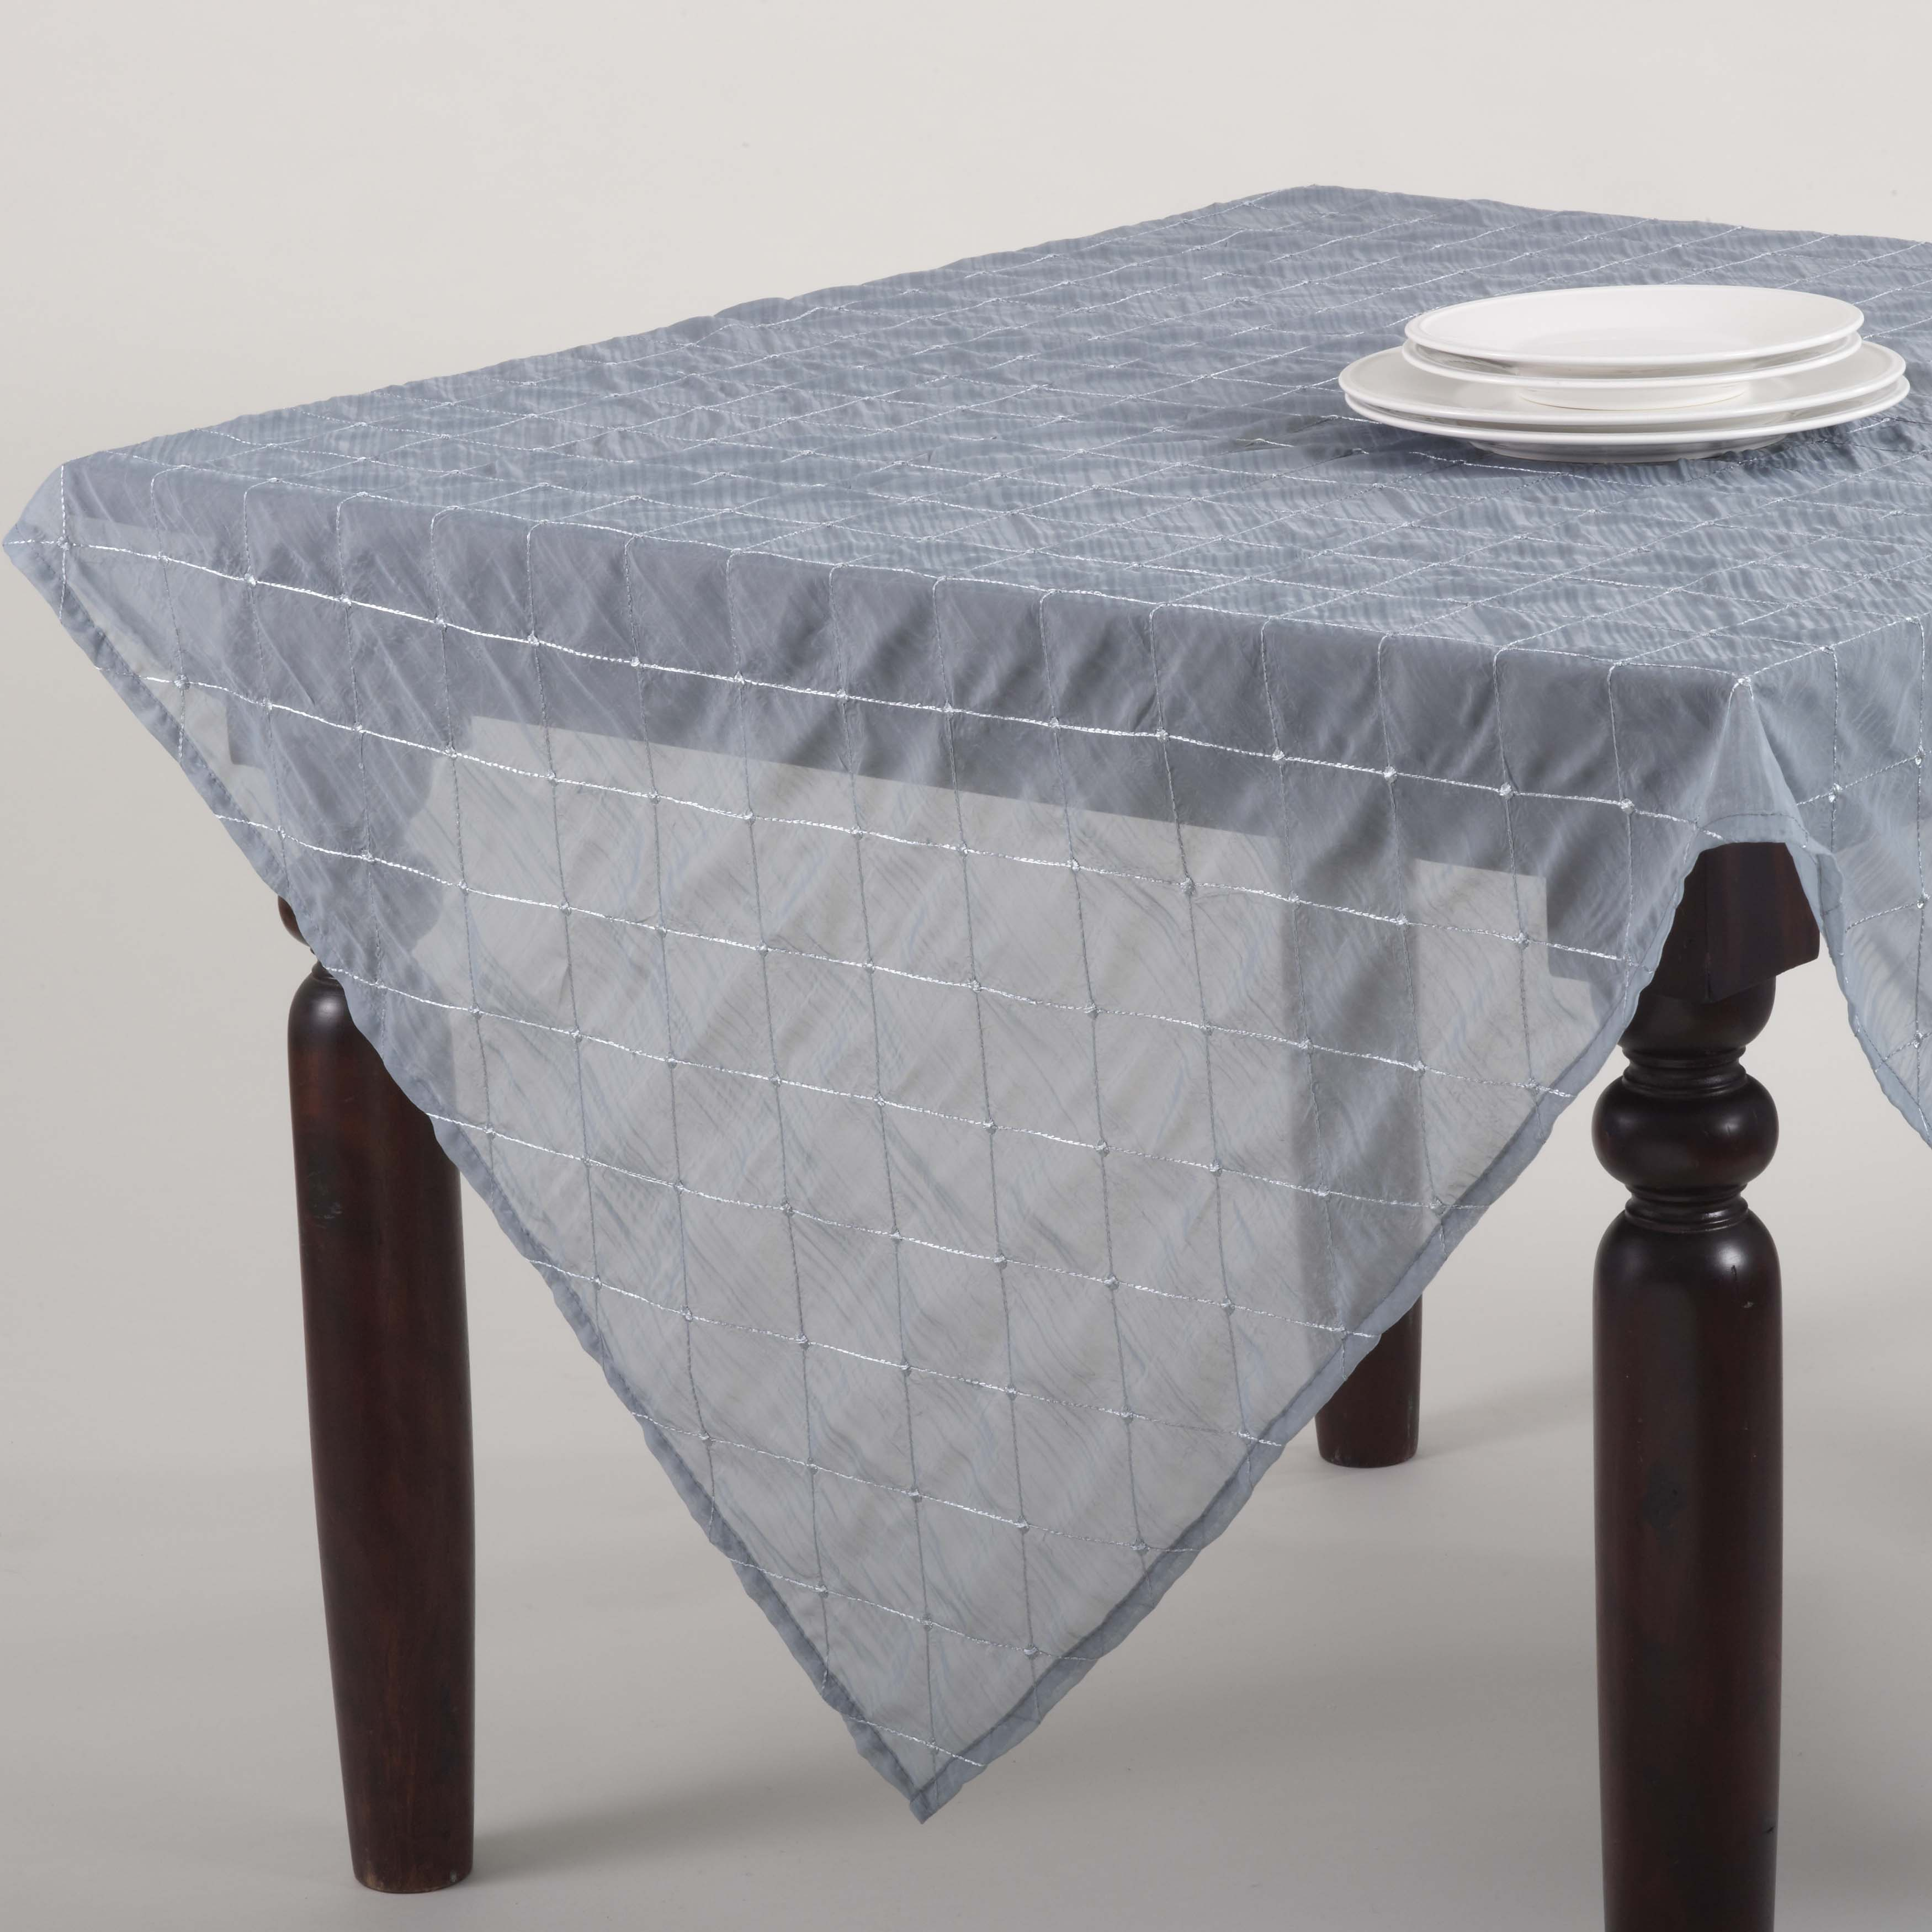 Stitched Sheer Design Topper or Tablecloth